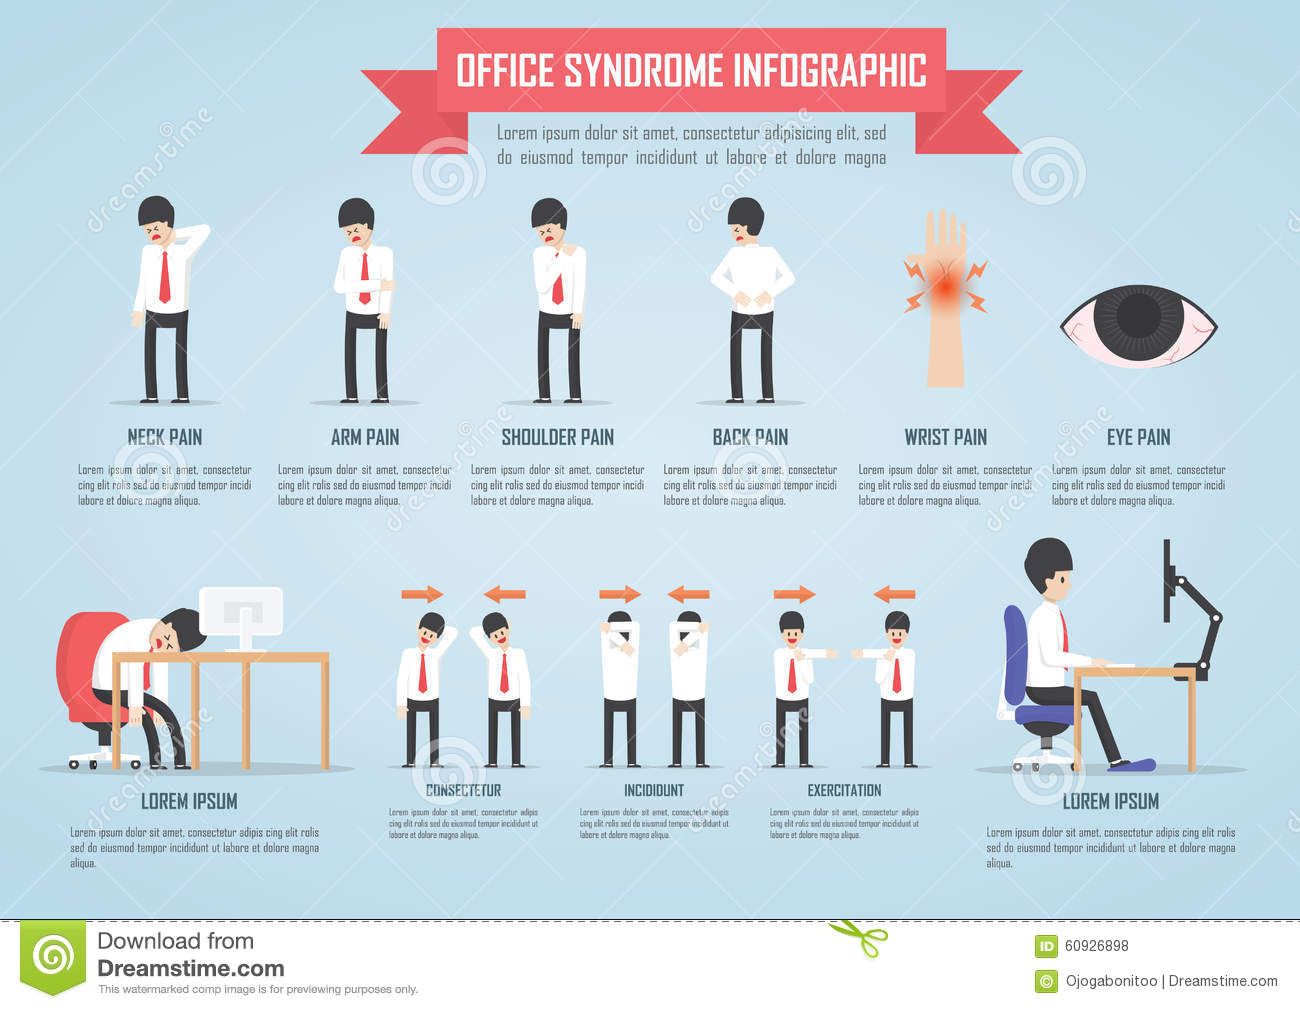 Office Syndrome Infographic Stock Vector  Image 60926898